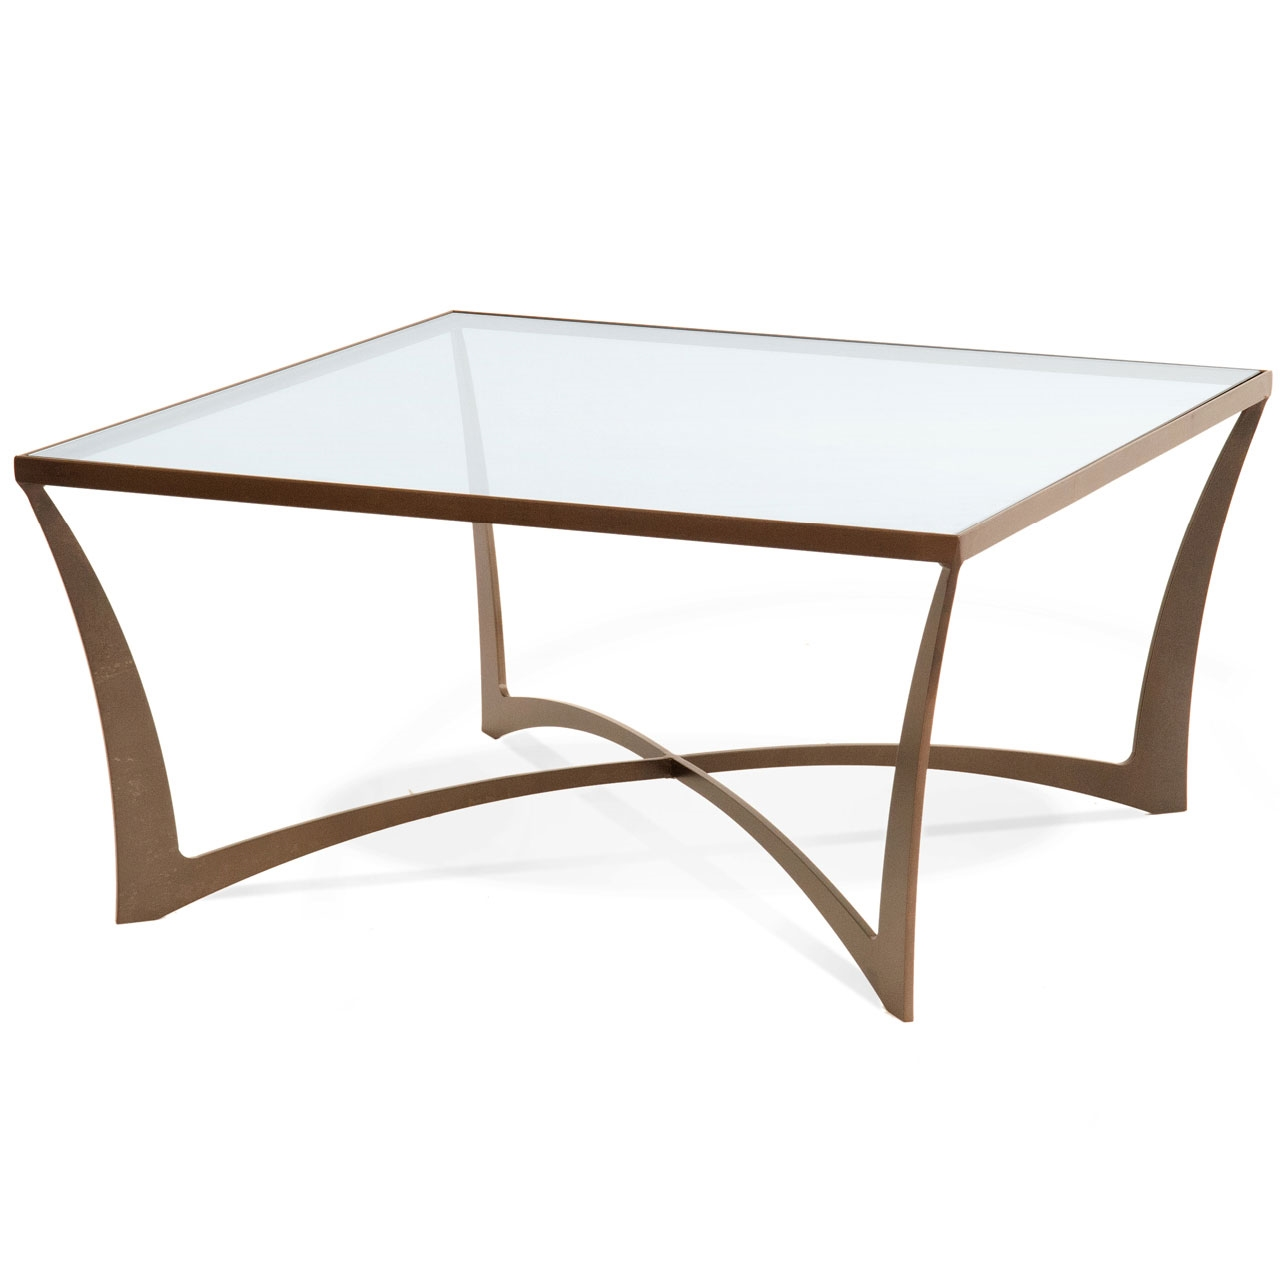 Table Top Table Measures 36 5 Inches Square By 18 5 Inches High And